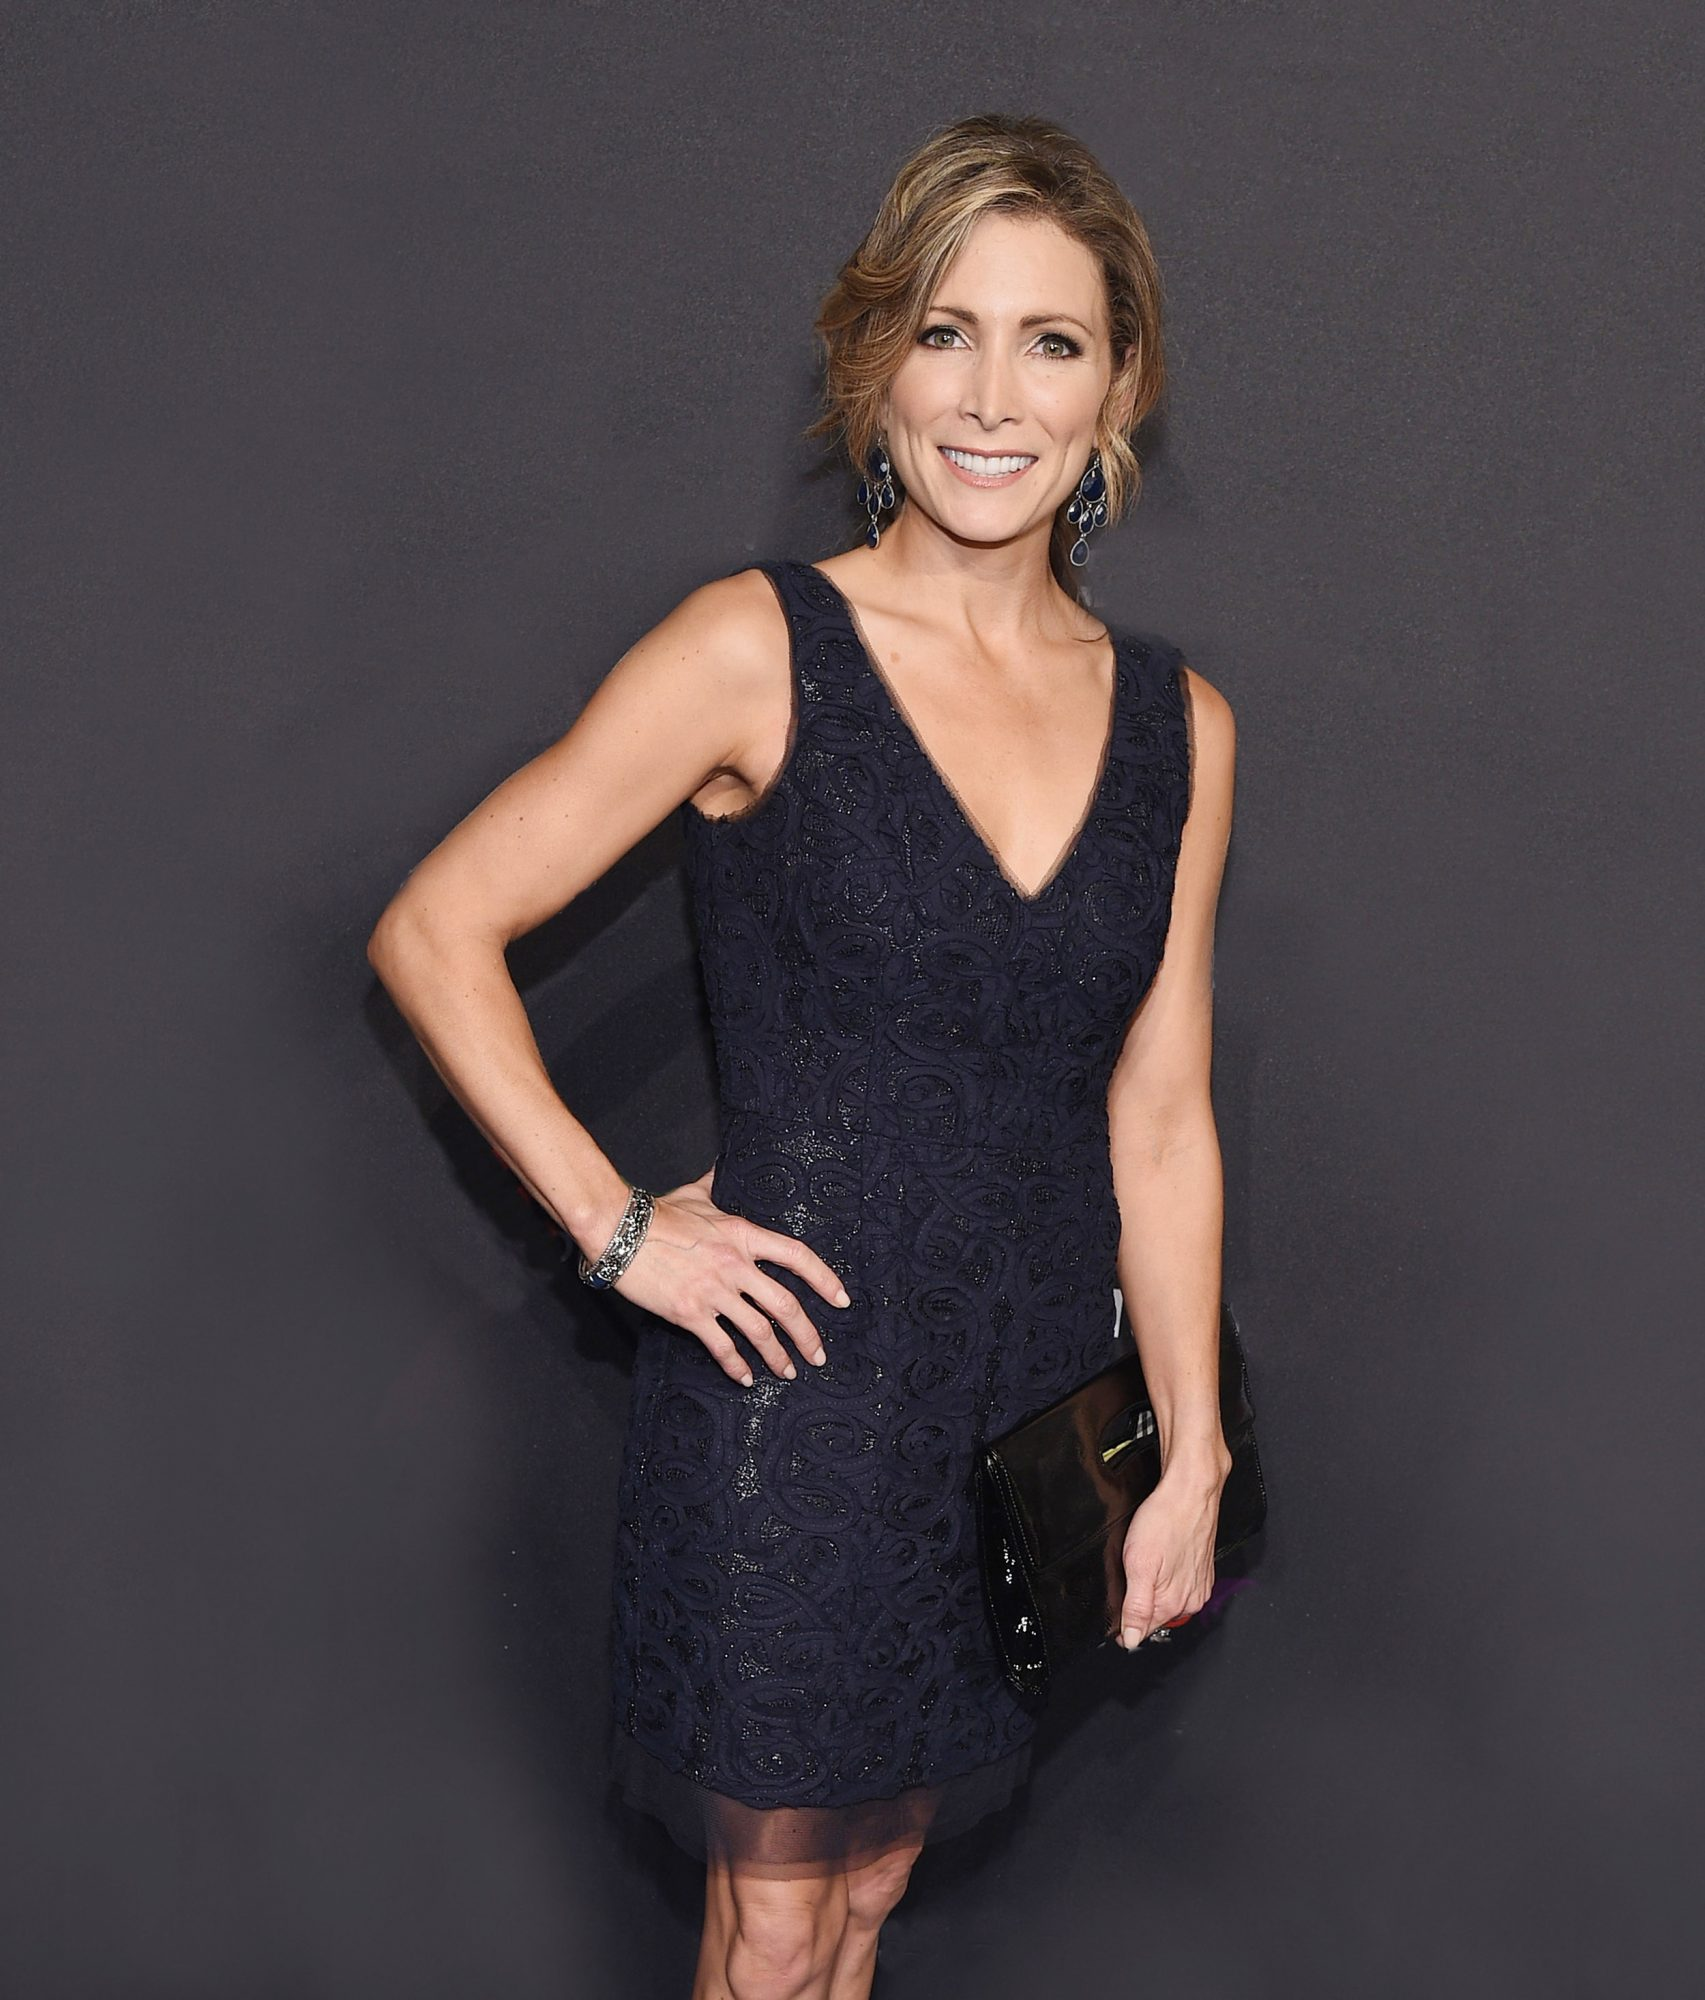 shannon-miller-olympic-gymnast